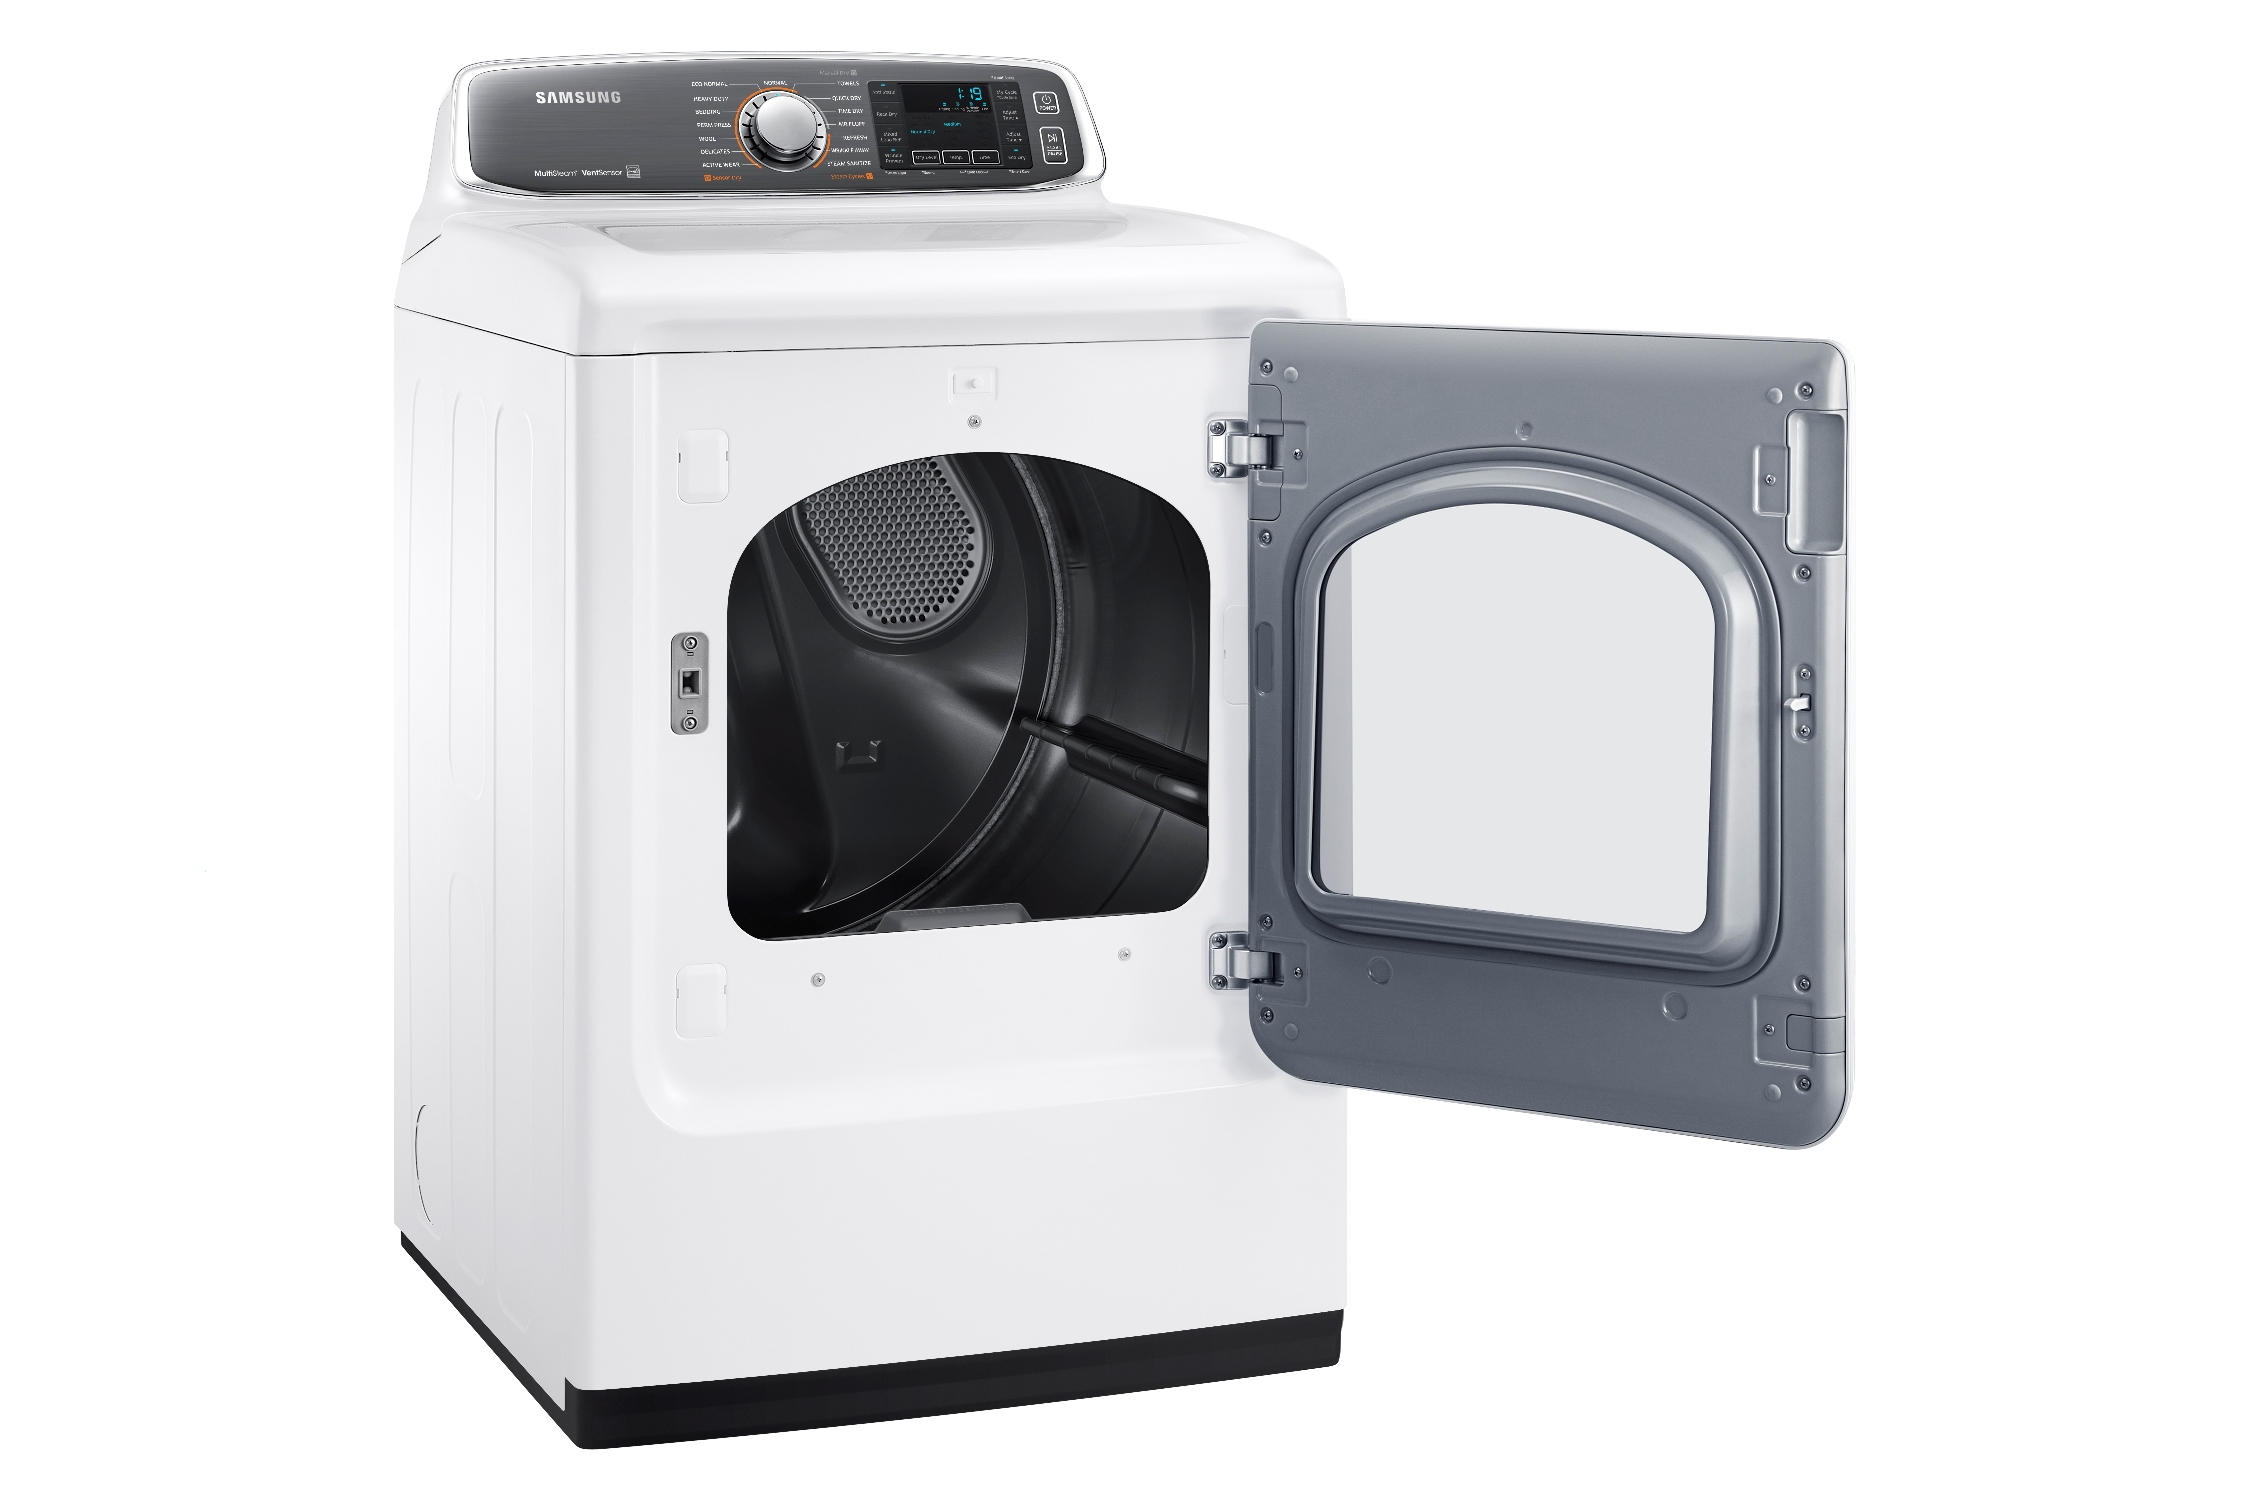 Samsung DV52J8700EW/A2 7.4 cu. ft. Large Capacity Electric Front Load Dryer White